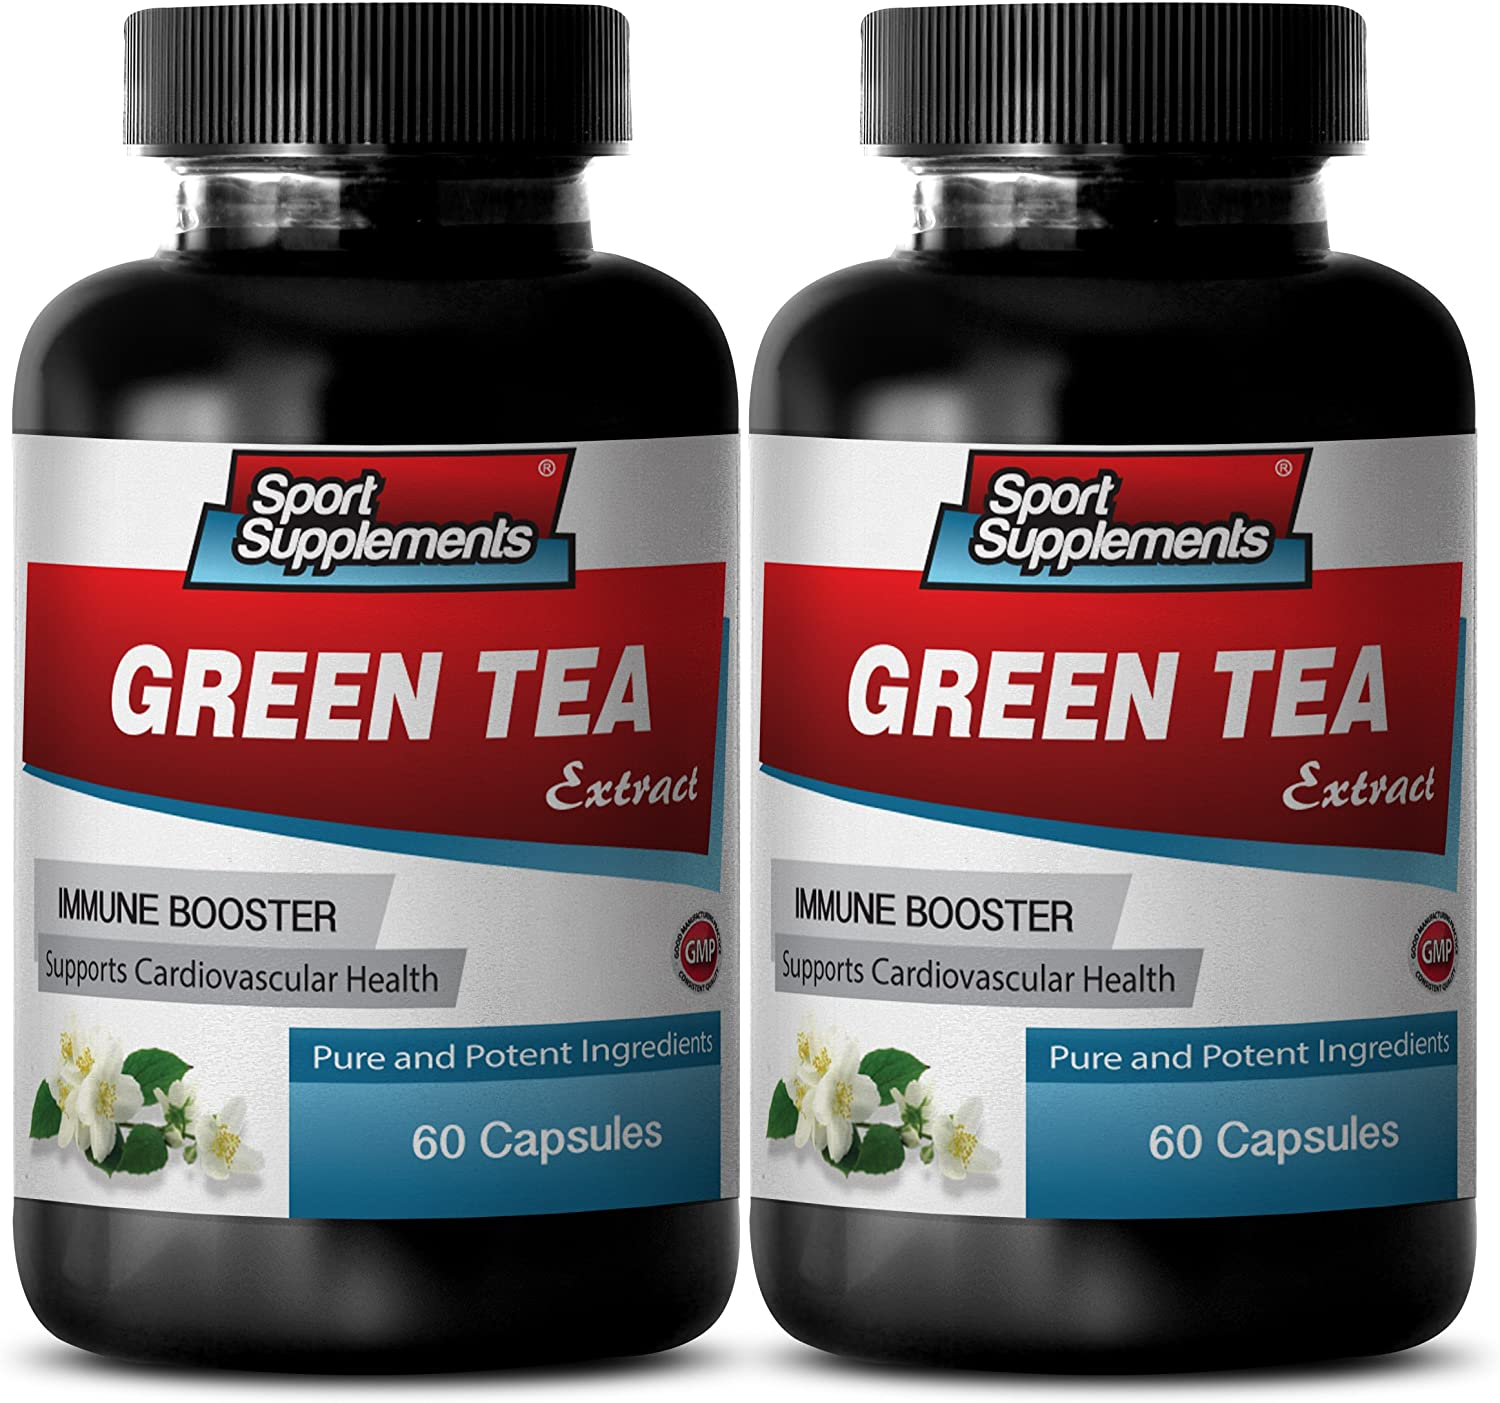 antioxidant Extreme Health Force - Green Tea Extract 300MG - Powerful ANTIOXIDANT - Natural Energy Boost - Green Tea Leaf Pills - 2 Bottles (120 Capsules)